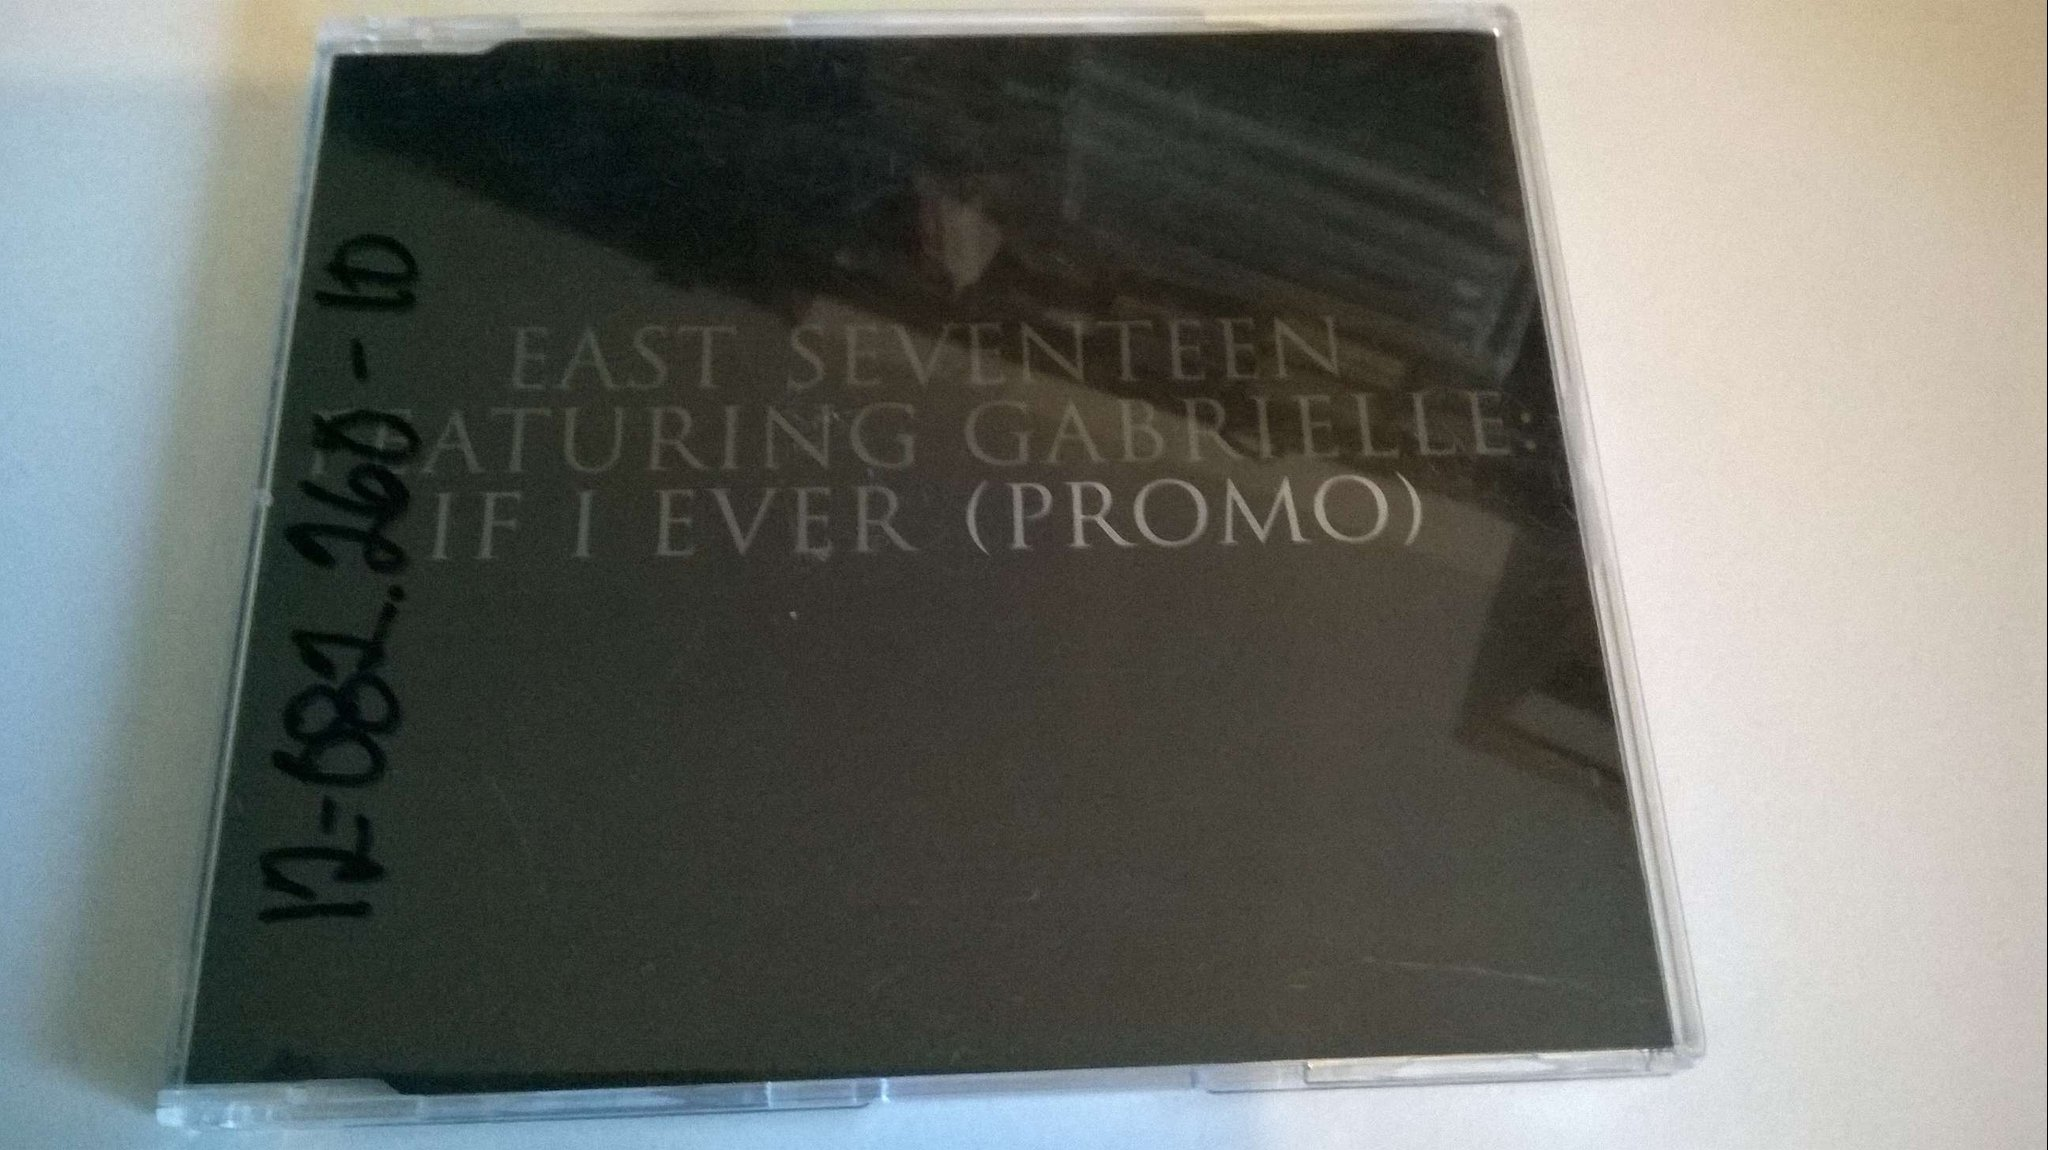 East Seventeen Featuring Gabrielle - If You Ever, Promo, CD